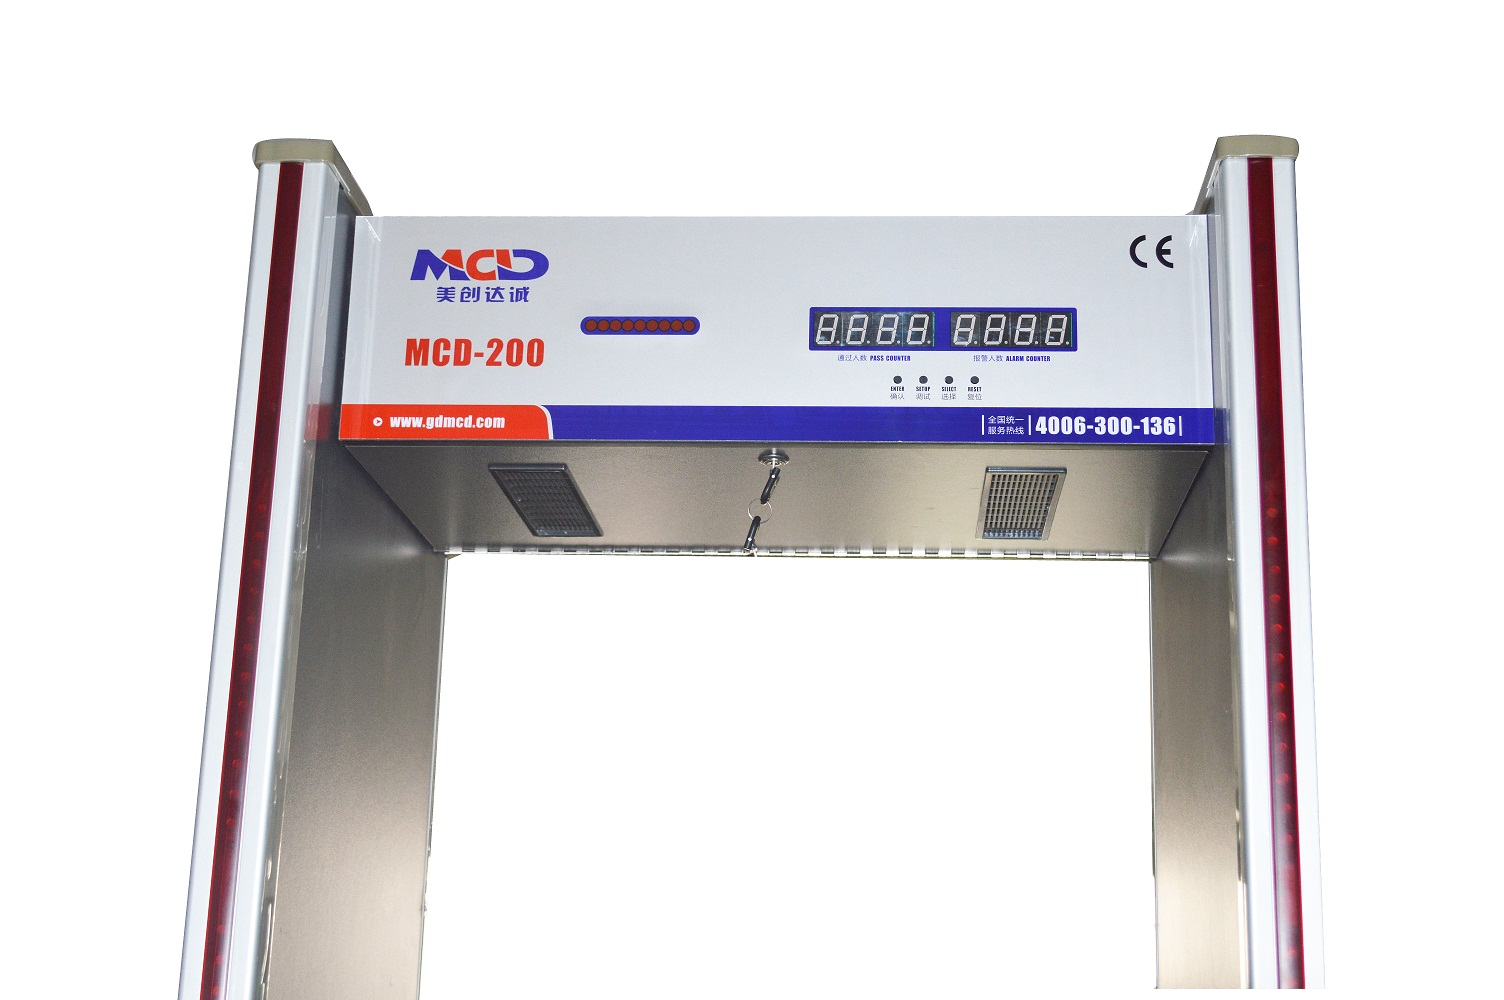 Hot Sale Archway Super Metal Detector Gate MCD-200/Economical Walkthrough Security Door